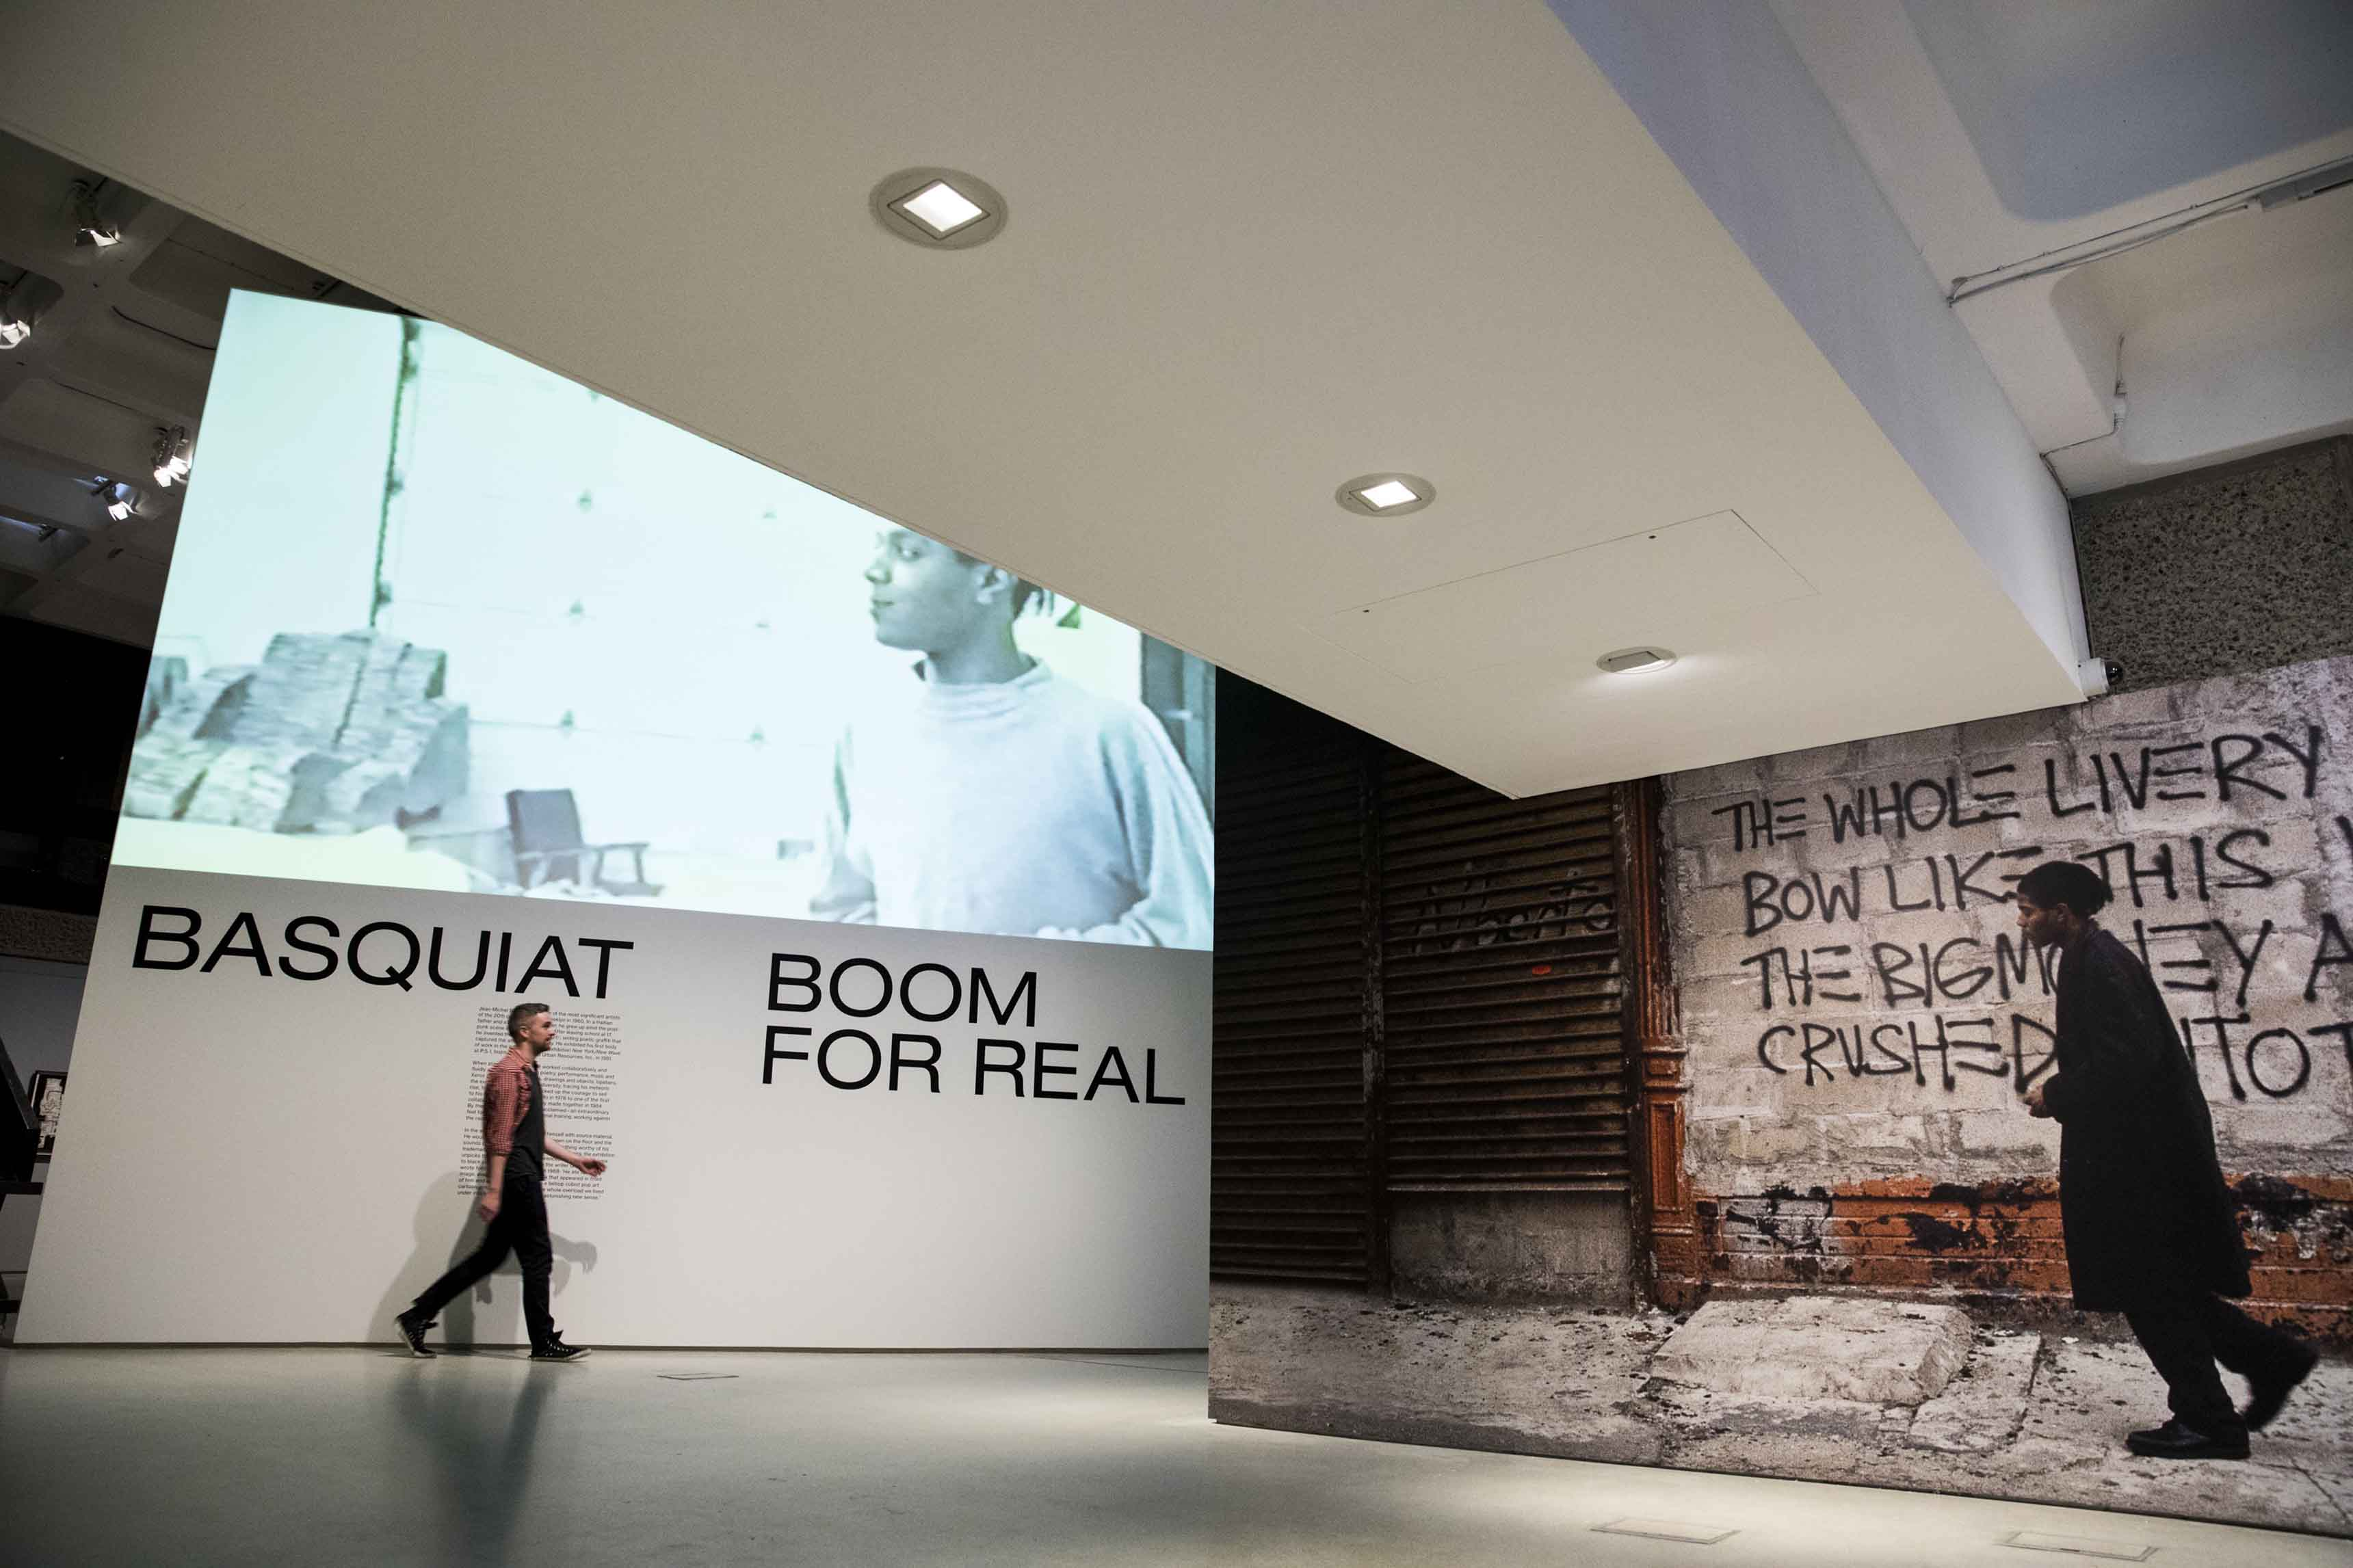 Basquiat: Boom For Real Installation view Barbican Art Gallery 21 September 2017 – 28 January 2018 © Tristan Fewings / Getty Images Artworks: © The Estate of Jean-Michel Basquiat. Licensed by Artestar.